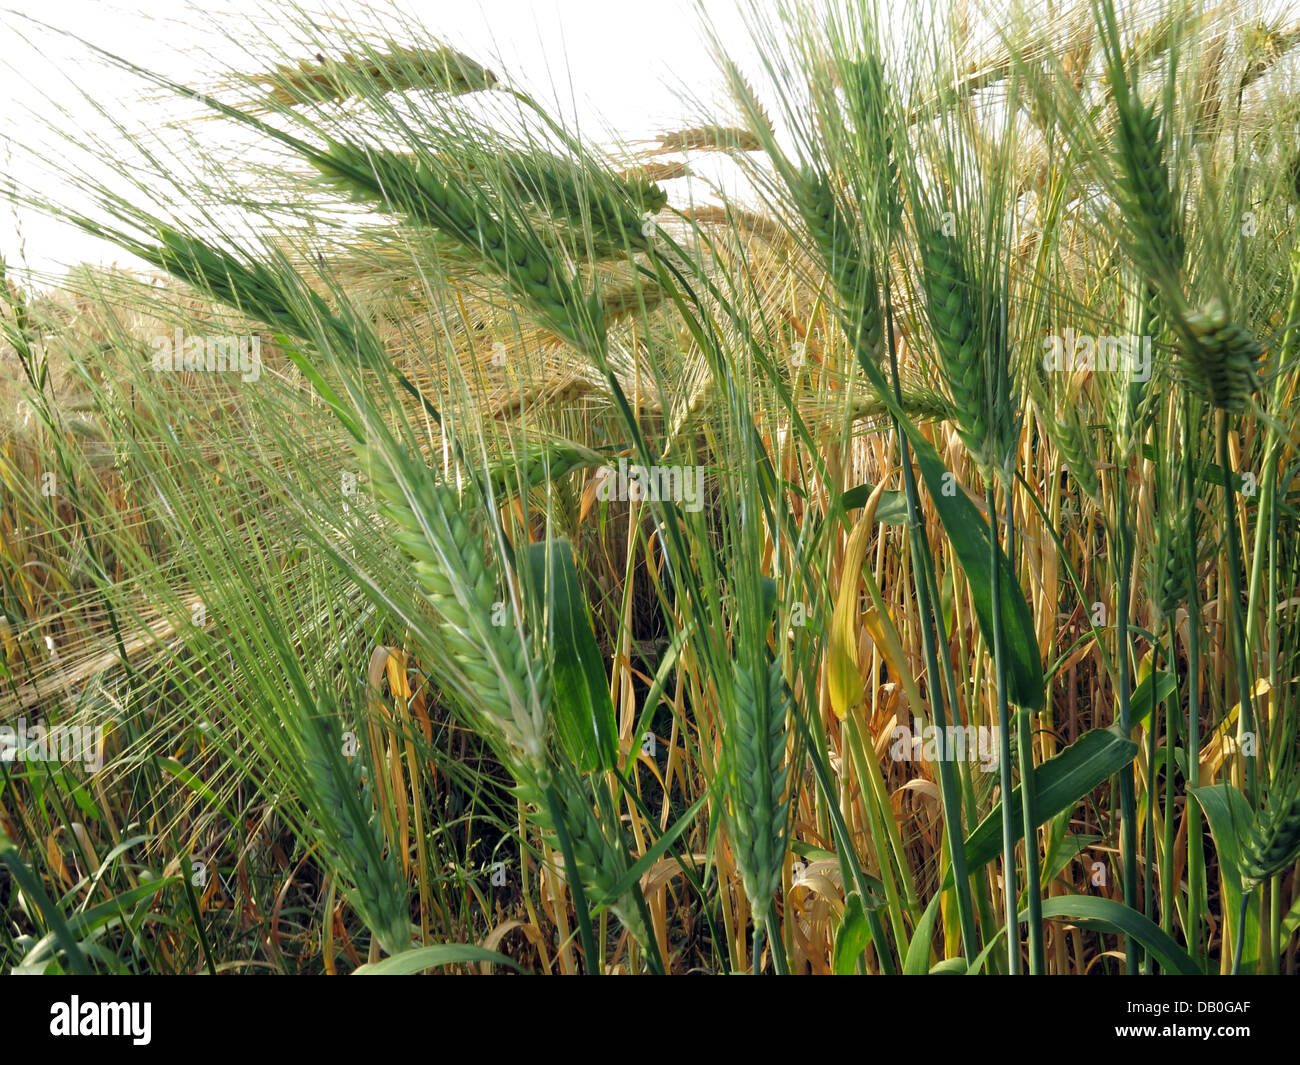 Sun,sunny,isolated,macro,close,up,closeup,close-up,cereal,grain,british,Wheat,English,england,field,farmer,farmers,farming,arable,grain,world,trade,vegetable,protein,food,Triticeae,Triticum,starch,endosperm,ear,white,flour,Gluten,sensitivity,sensitive,undetected,coeliac,disease,celiac,gliadin,Gotonysmith,barley,and,rye,gliadin,the,enzyme,tissue,transglutaminase,gluten-free,diet,glutenfree,harvested,harvests,festival,high,quality,prices,price,bushel,yield,improvement,futures,producer,low,crop,anthesis,stage,Whole,green,Buy Pictures of,Buy Images Of